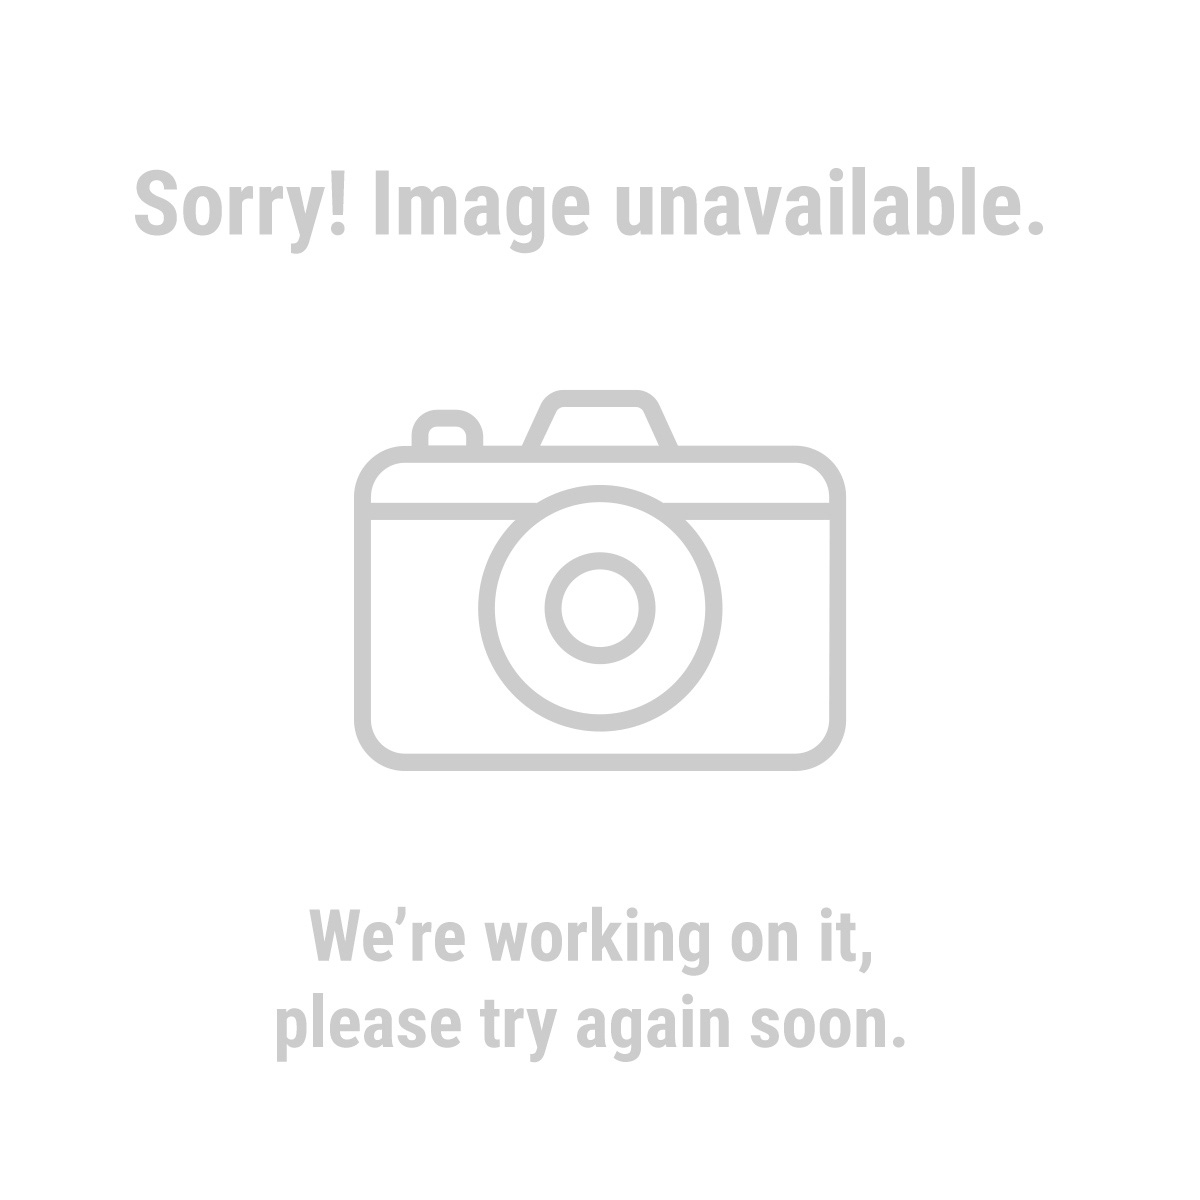 Striker 96596 Striker Dura Lead Replacements, 5 Pack